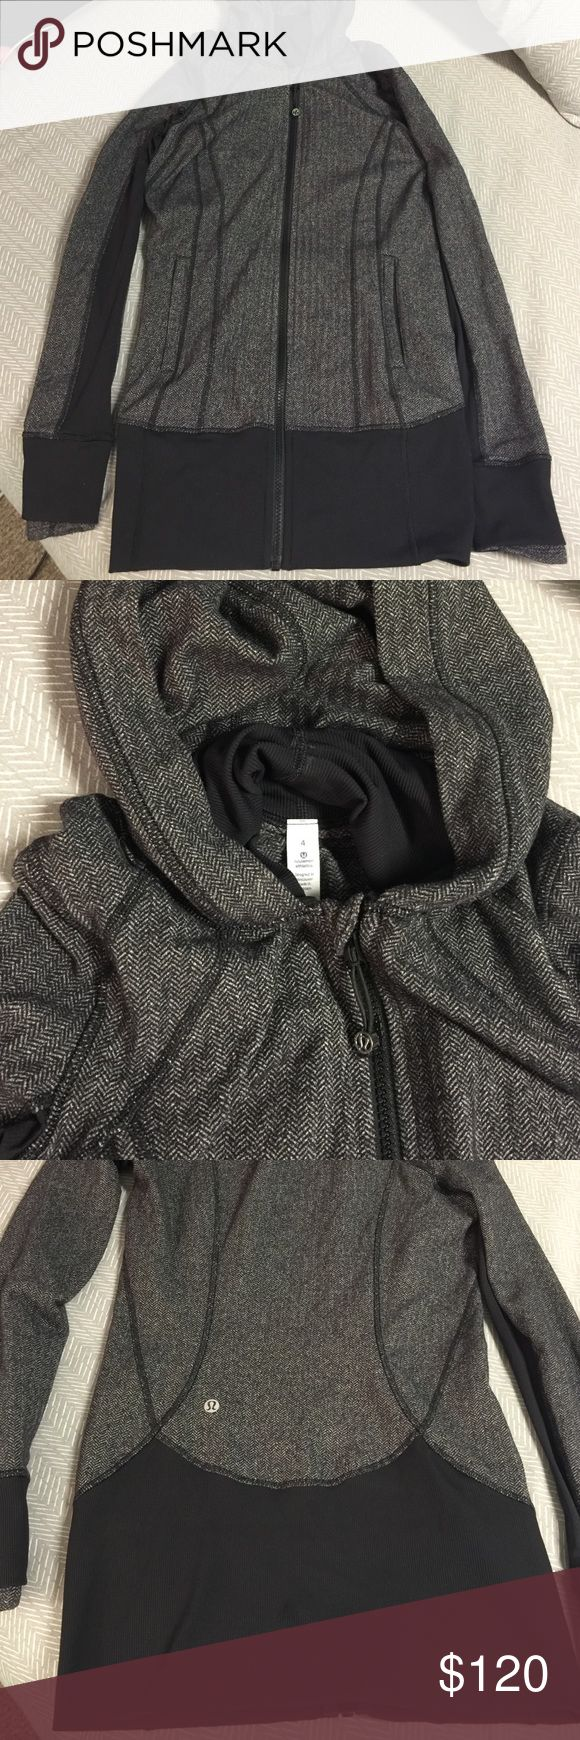 Lululemon Hoodie Only worn 3 times. Heather grey and black fabric. No stain or wearing of any kind! lululemon athletica Tops Sweatshirts & Hoodies